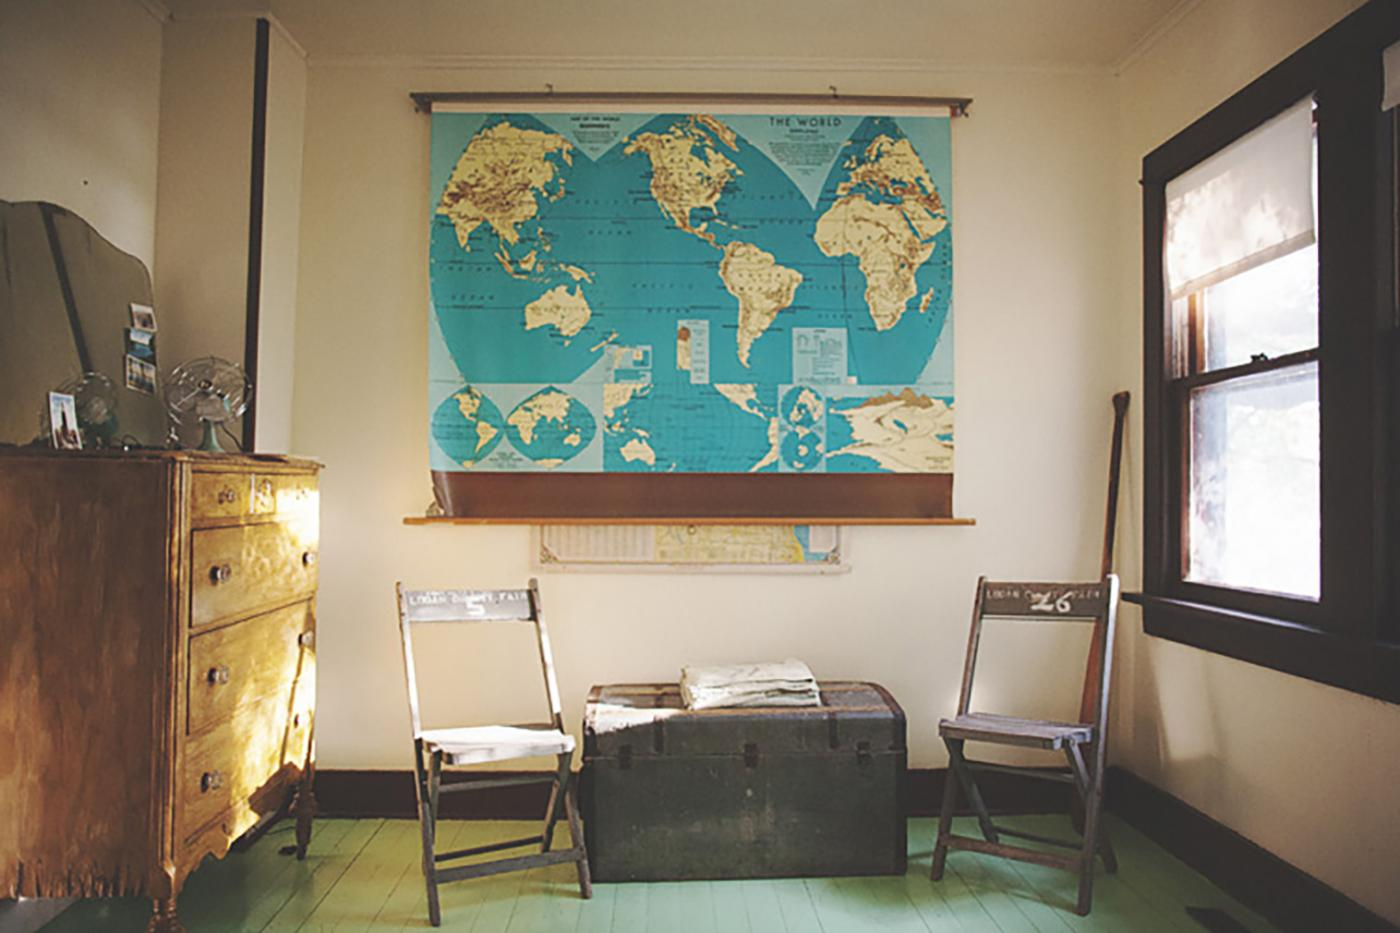 If you are adventurous this room is perfect for you - Camp Wandawega, Wisconsin.